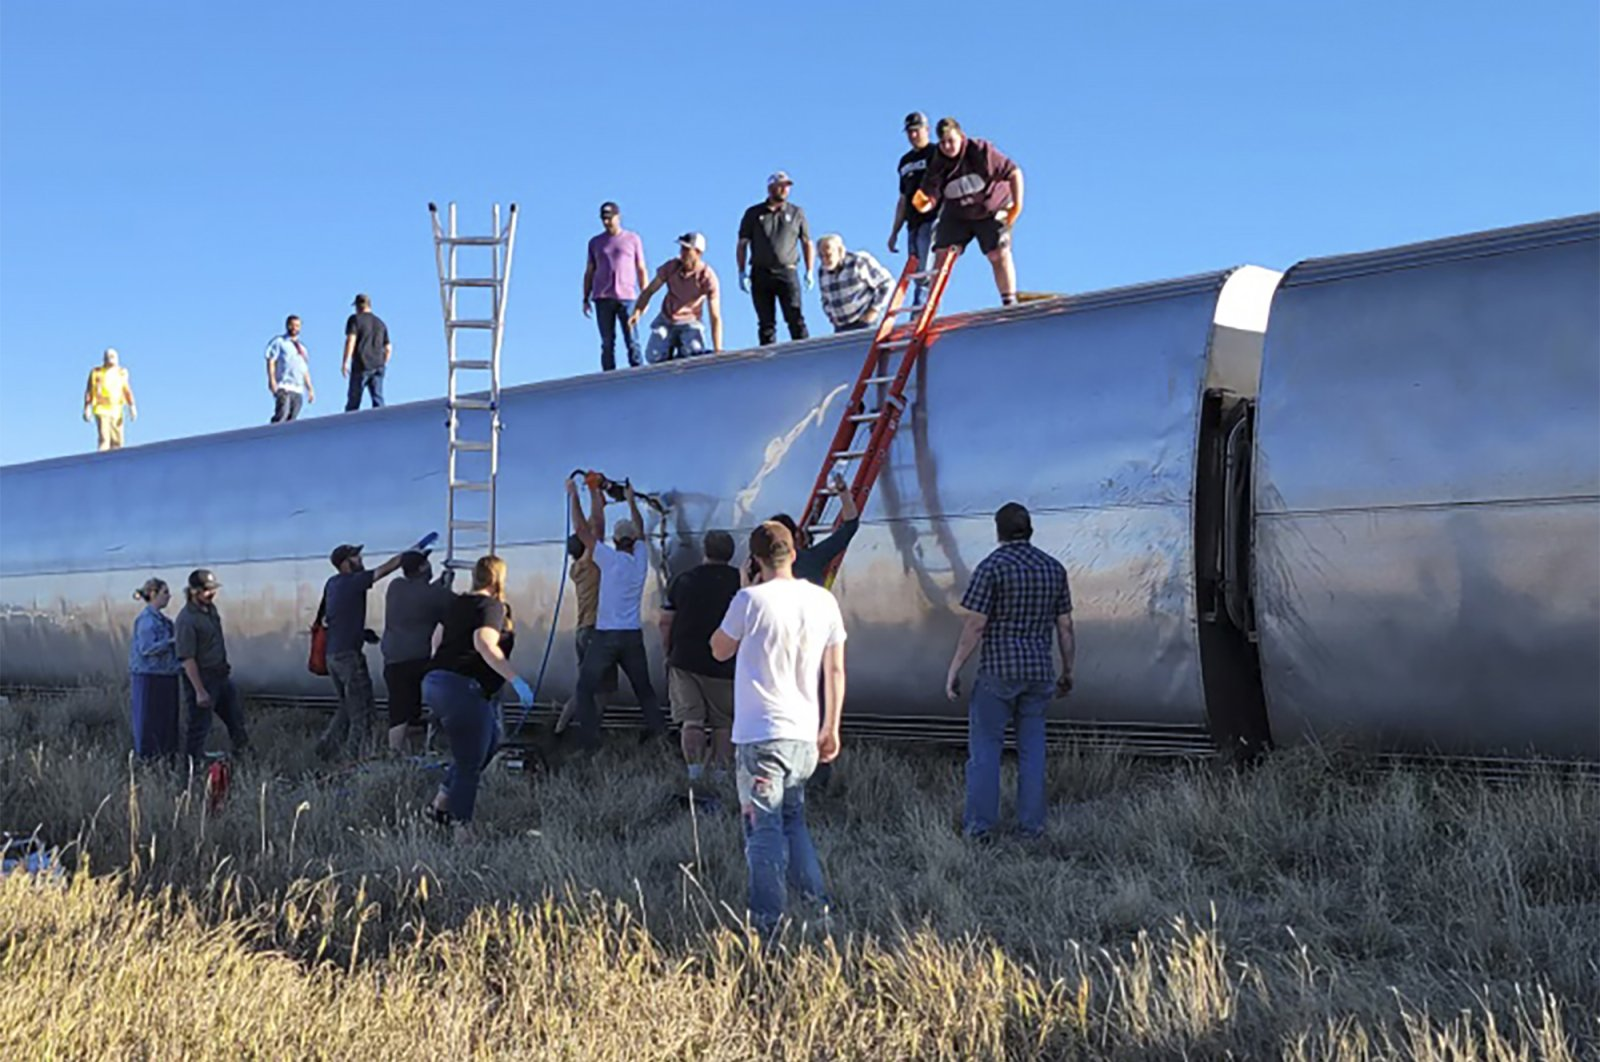 In this photo provided by Kimberly Fossen, people work at the scene of an Amtrak train derailment on Saturday, Sept. 25, 2021, in north-central Montana, U.S. (AP Photo)